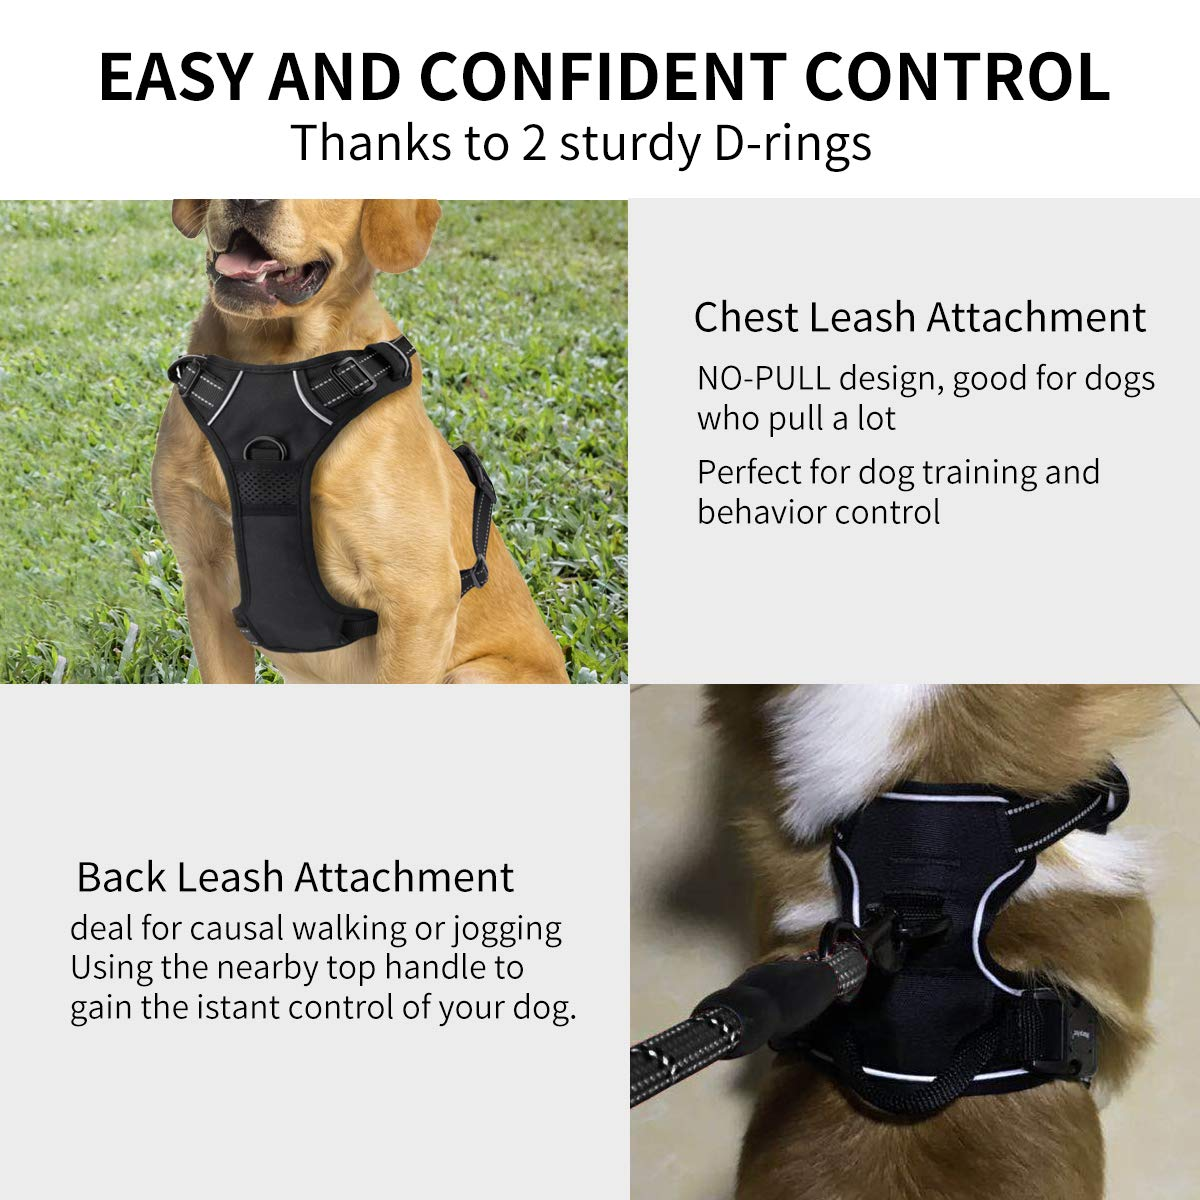 Morstone Vest Harnesses for Dogs, Dog Harness No-Pull Pet Harness Adjustable Outdoor Pet Vest 3M Reflective Oxford Material Vest for Dogs (Size Large)